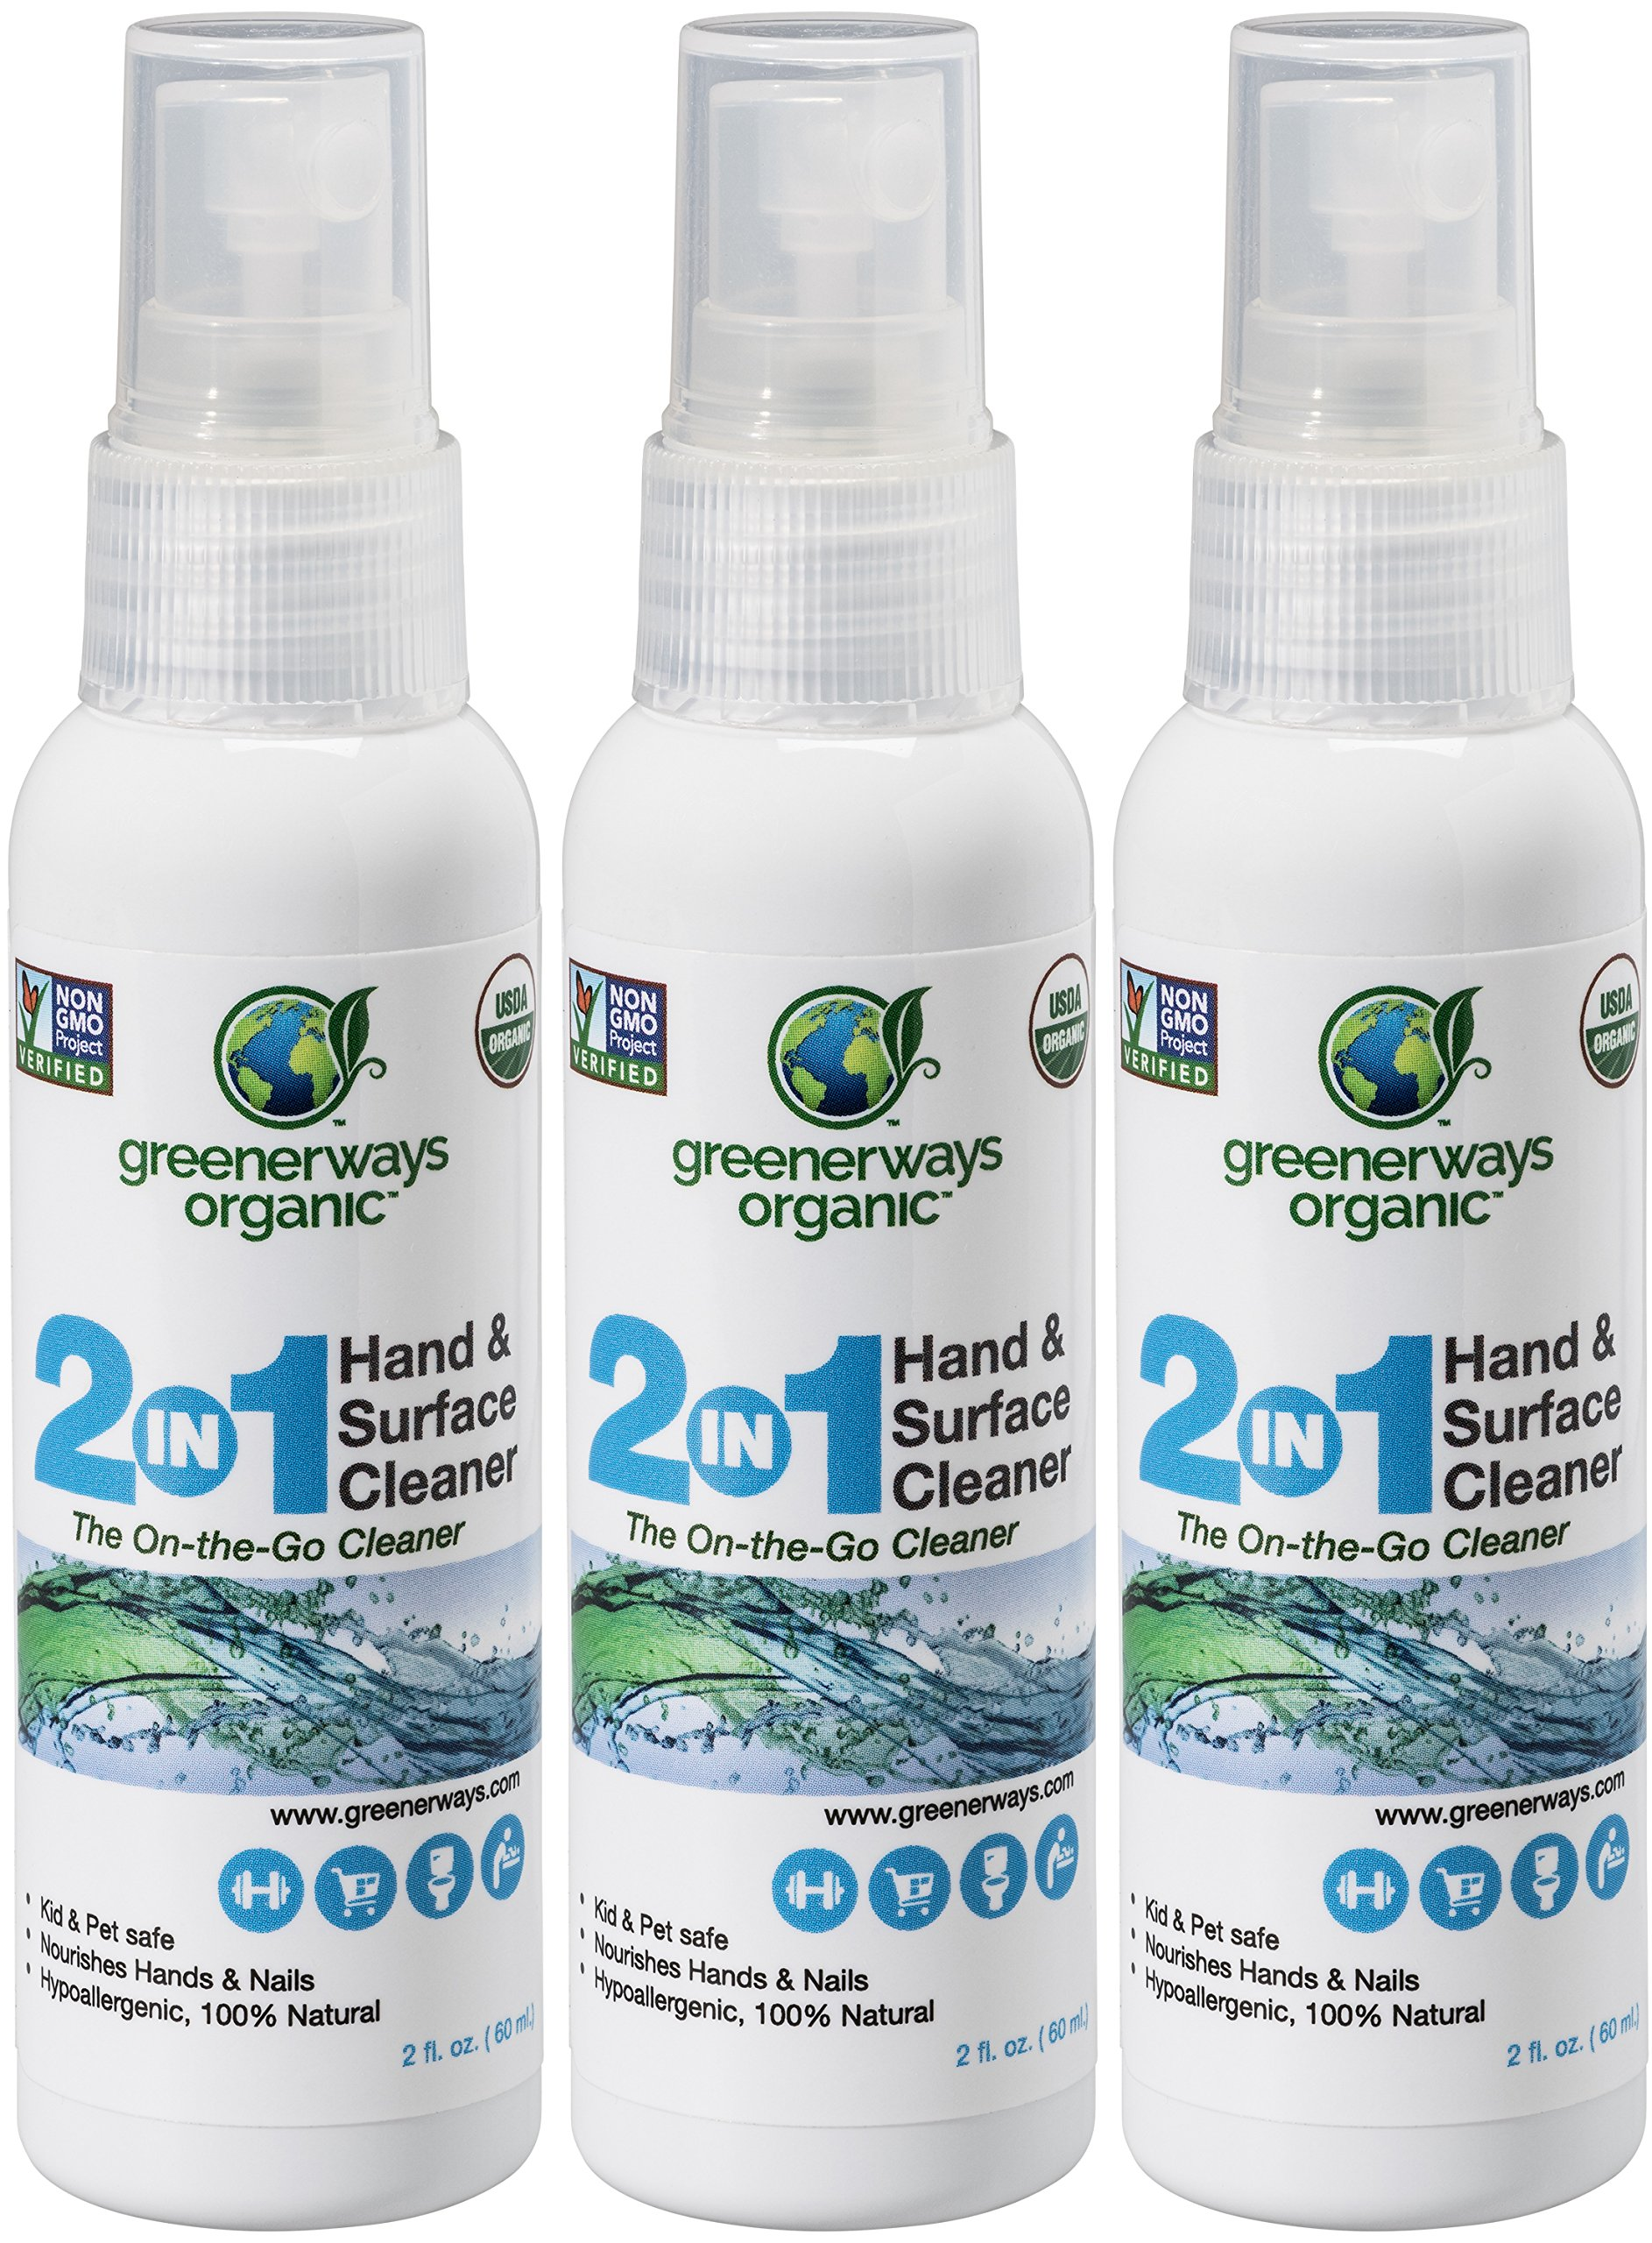 Amazon-Prime-Deals 2018 - Greenerways Organic Natural All-Purpose Cleaner, Multipurpose Cleaner, USDA Organic Non-GMO Hand Sanitizer Travel Size Household Multi-Surface Spray (3-Pack 2oz) MSRP 23.98